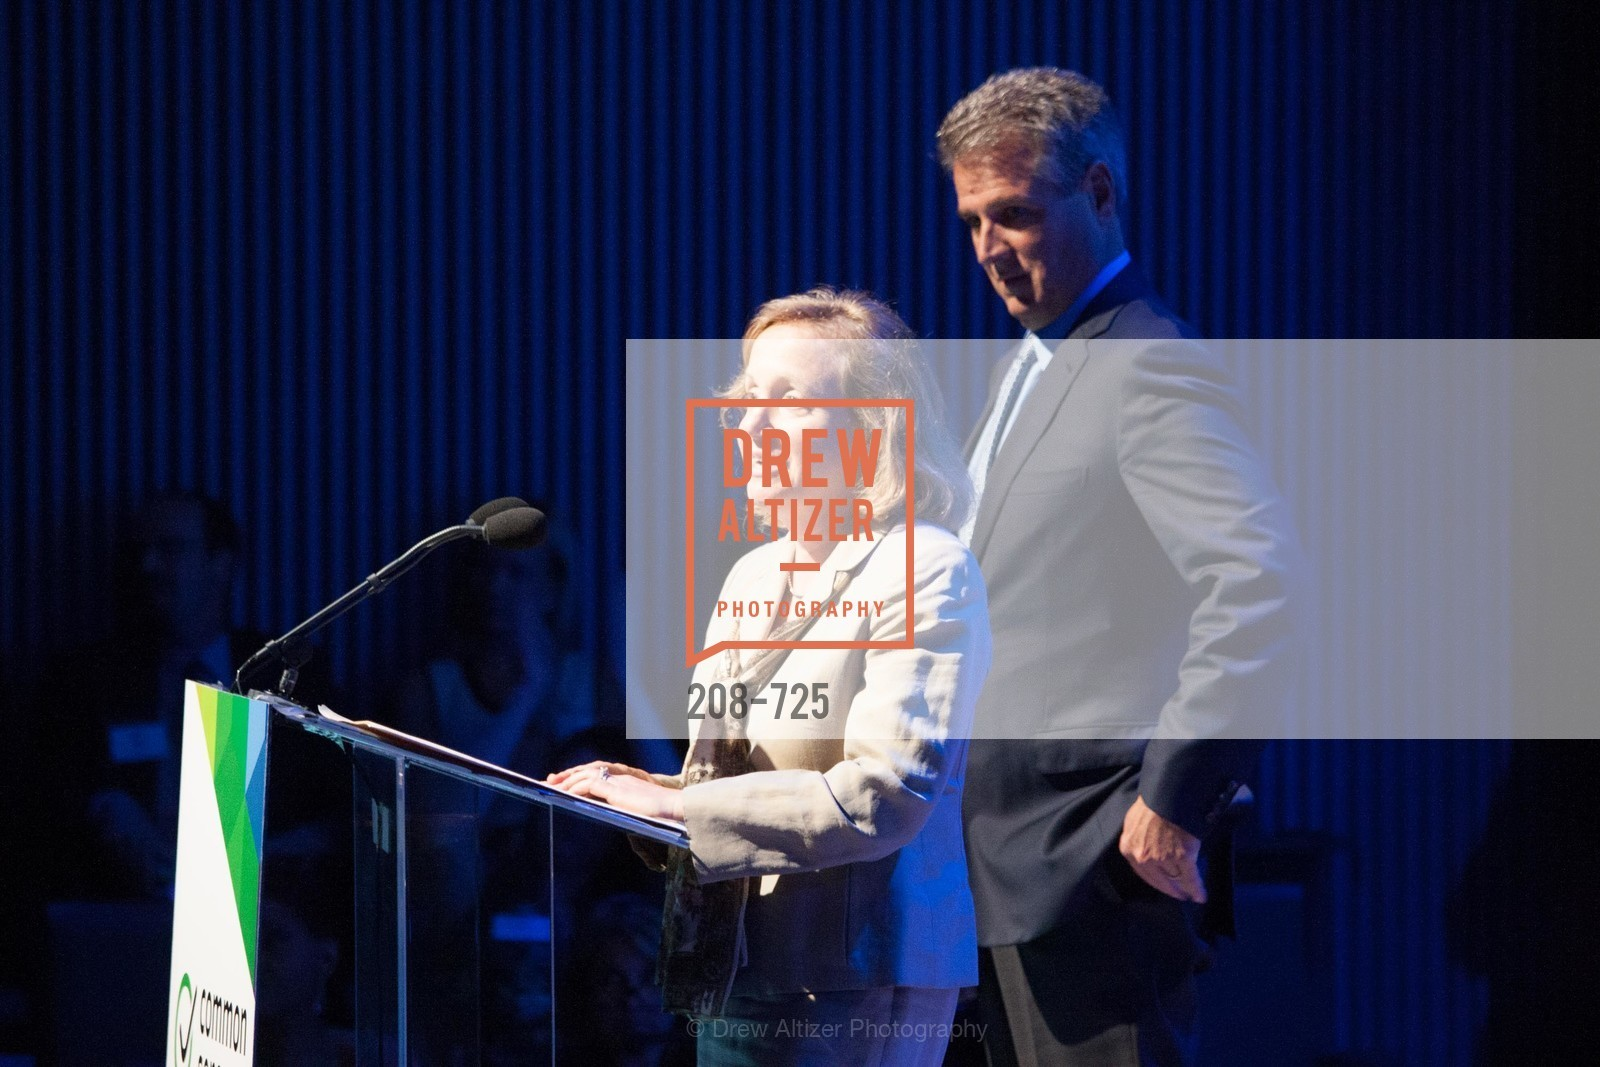 Amy Shenkan, Bill Price, COMMON SENSE Media Awards 2015, US, May 13th, 2015,Drew Altizer, Drew Altizer Photography, full-service agency, private events, San Francisco photographer, photographer california